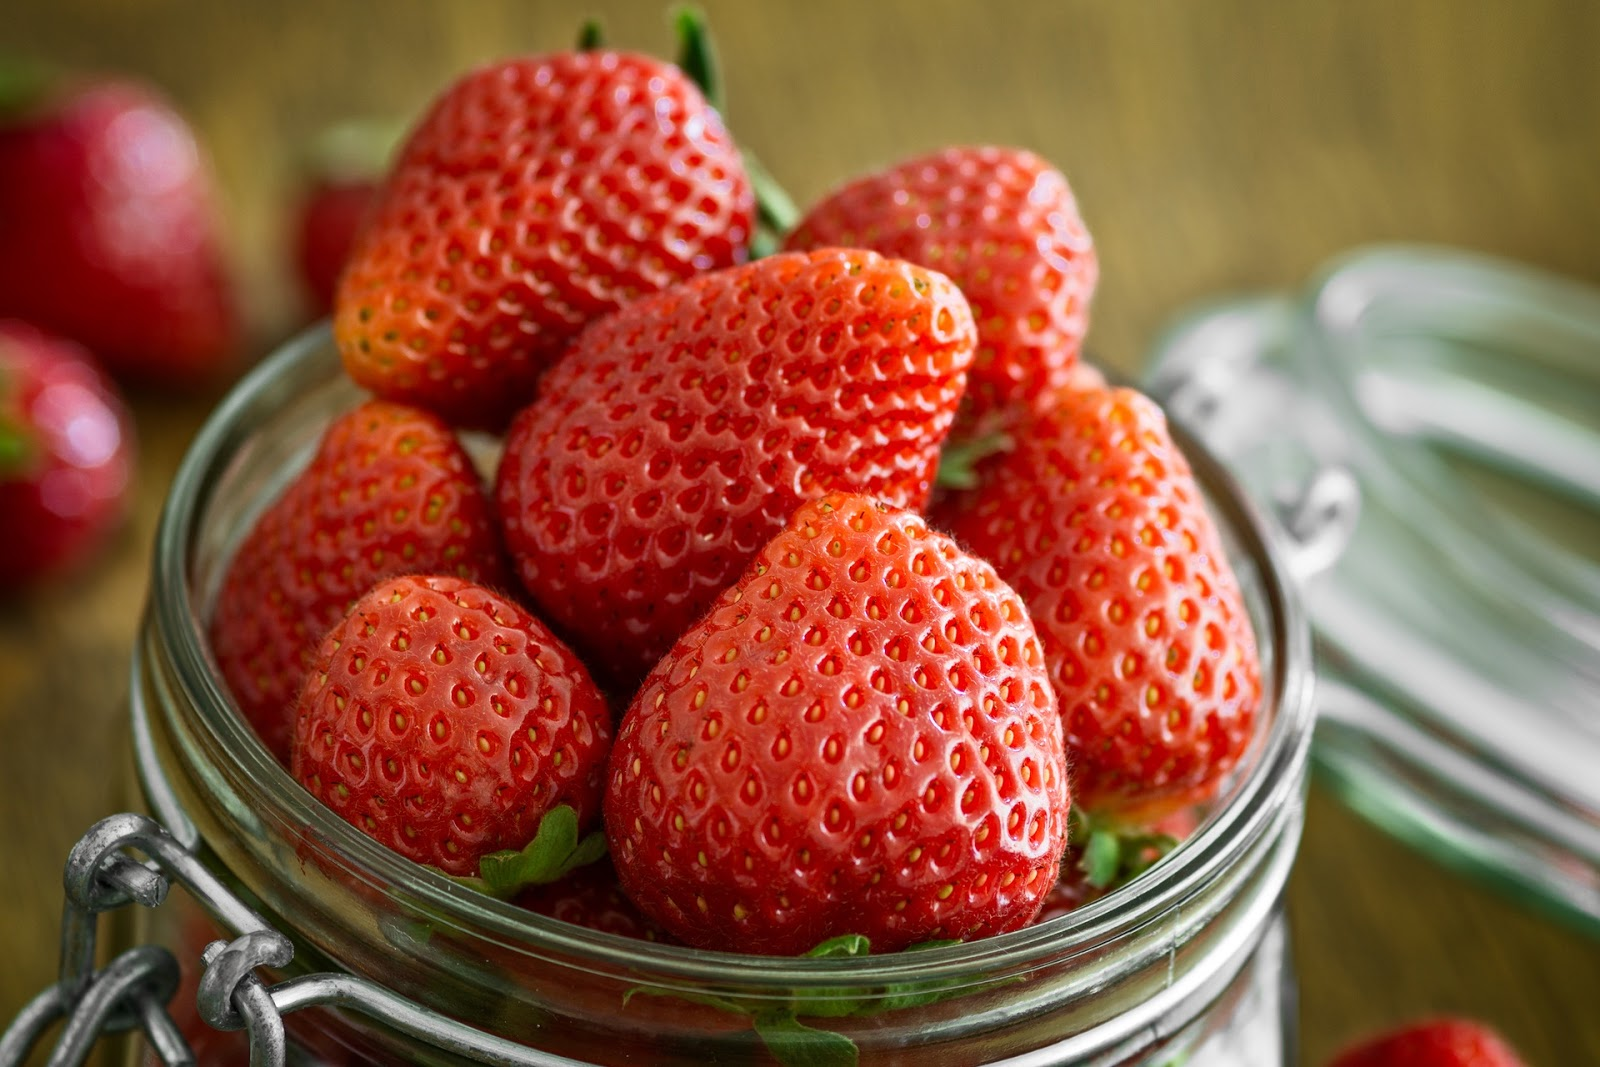 Strawberries in a kilner jar - keep your family healthy